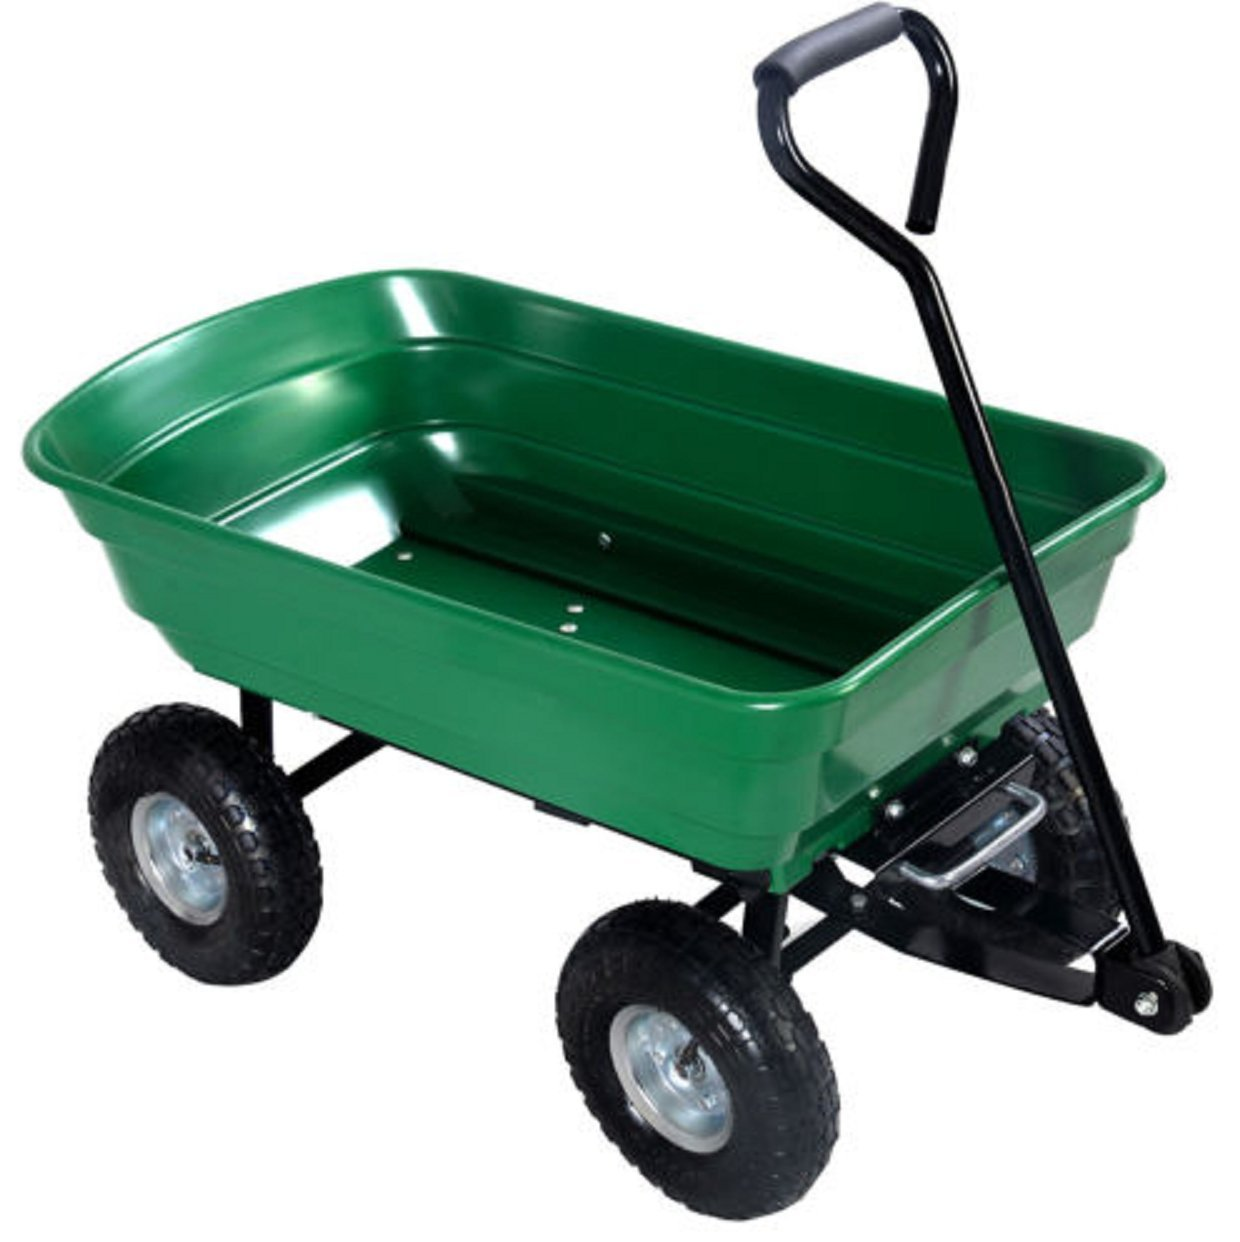 Garden Cart Wagon Wheels Rolling Dump Trailer Lawn Utility Carrier Heavy Duty 650LB